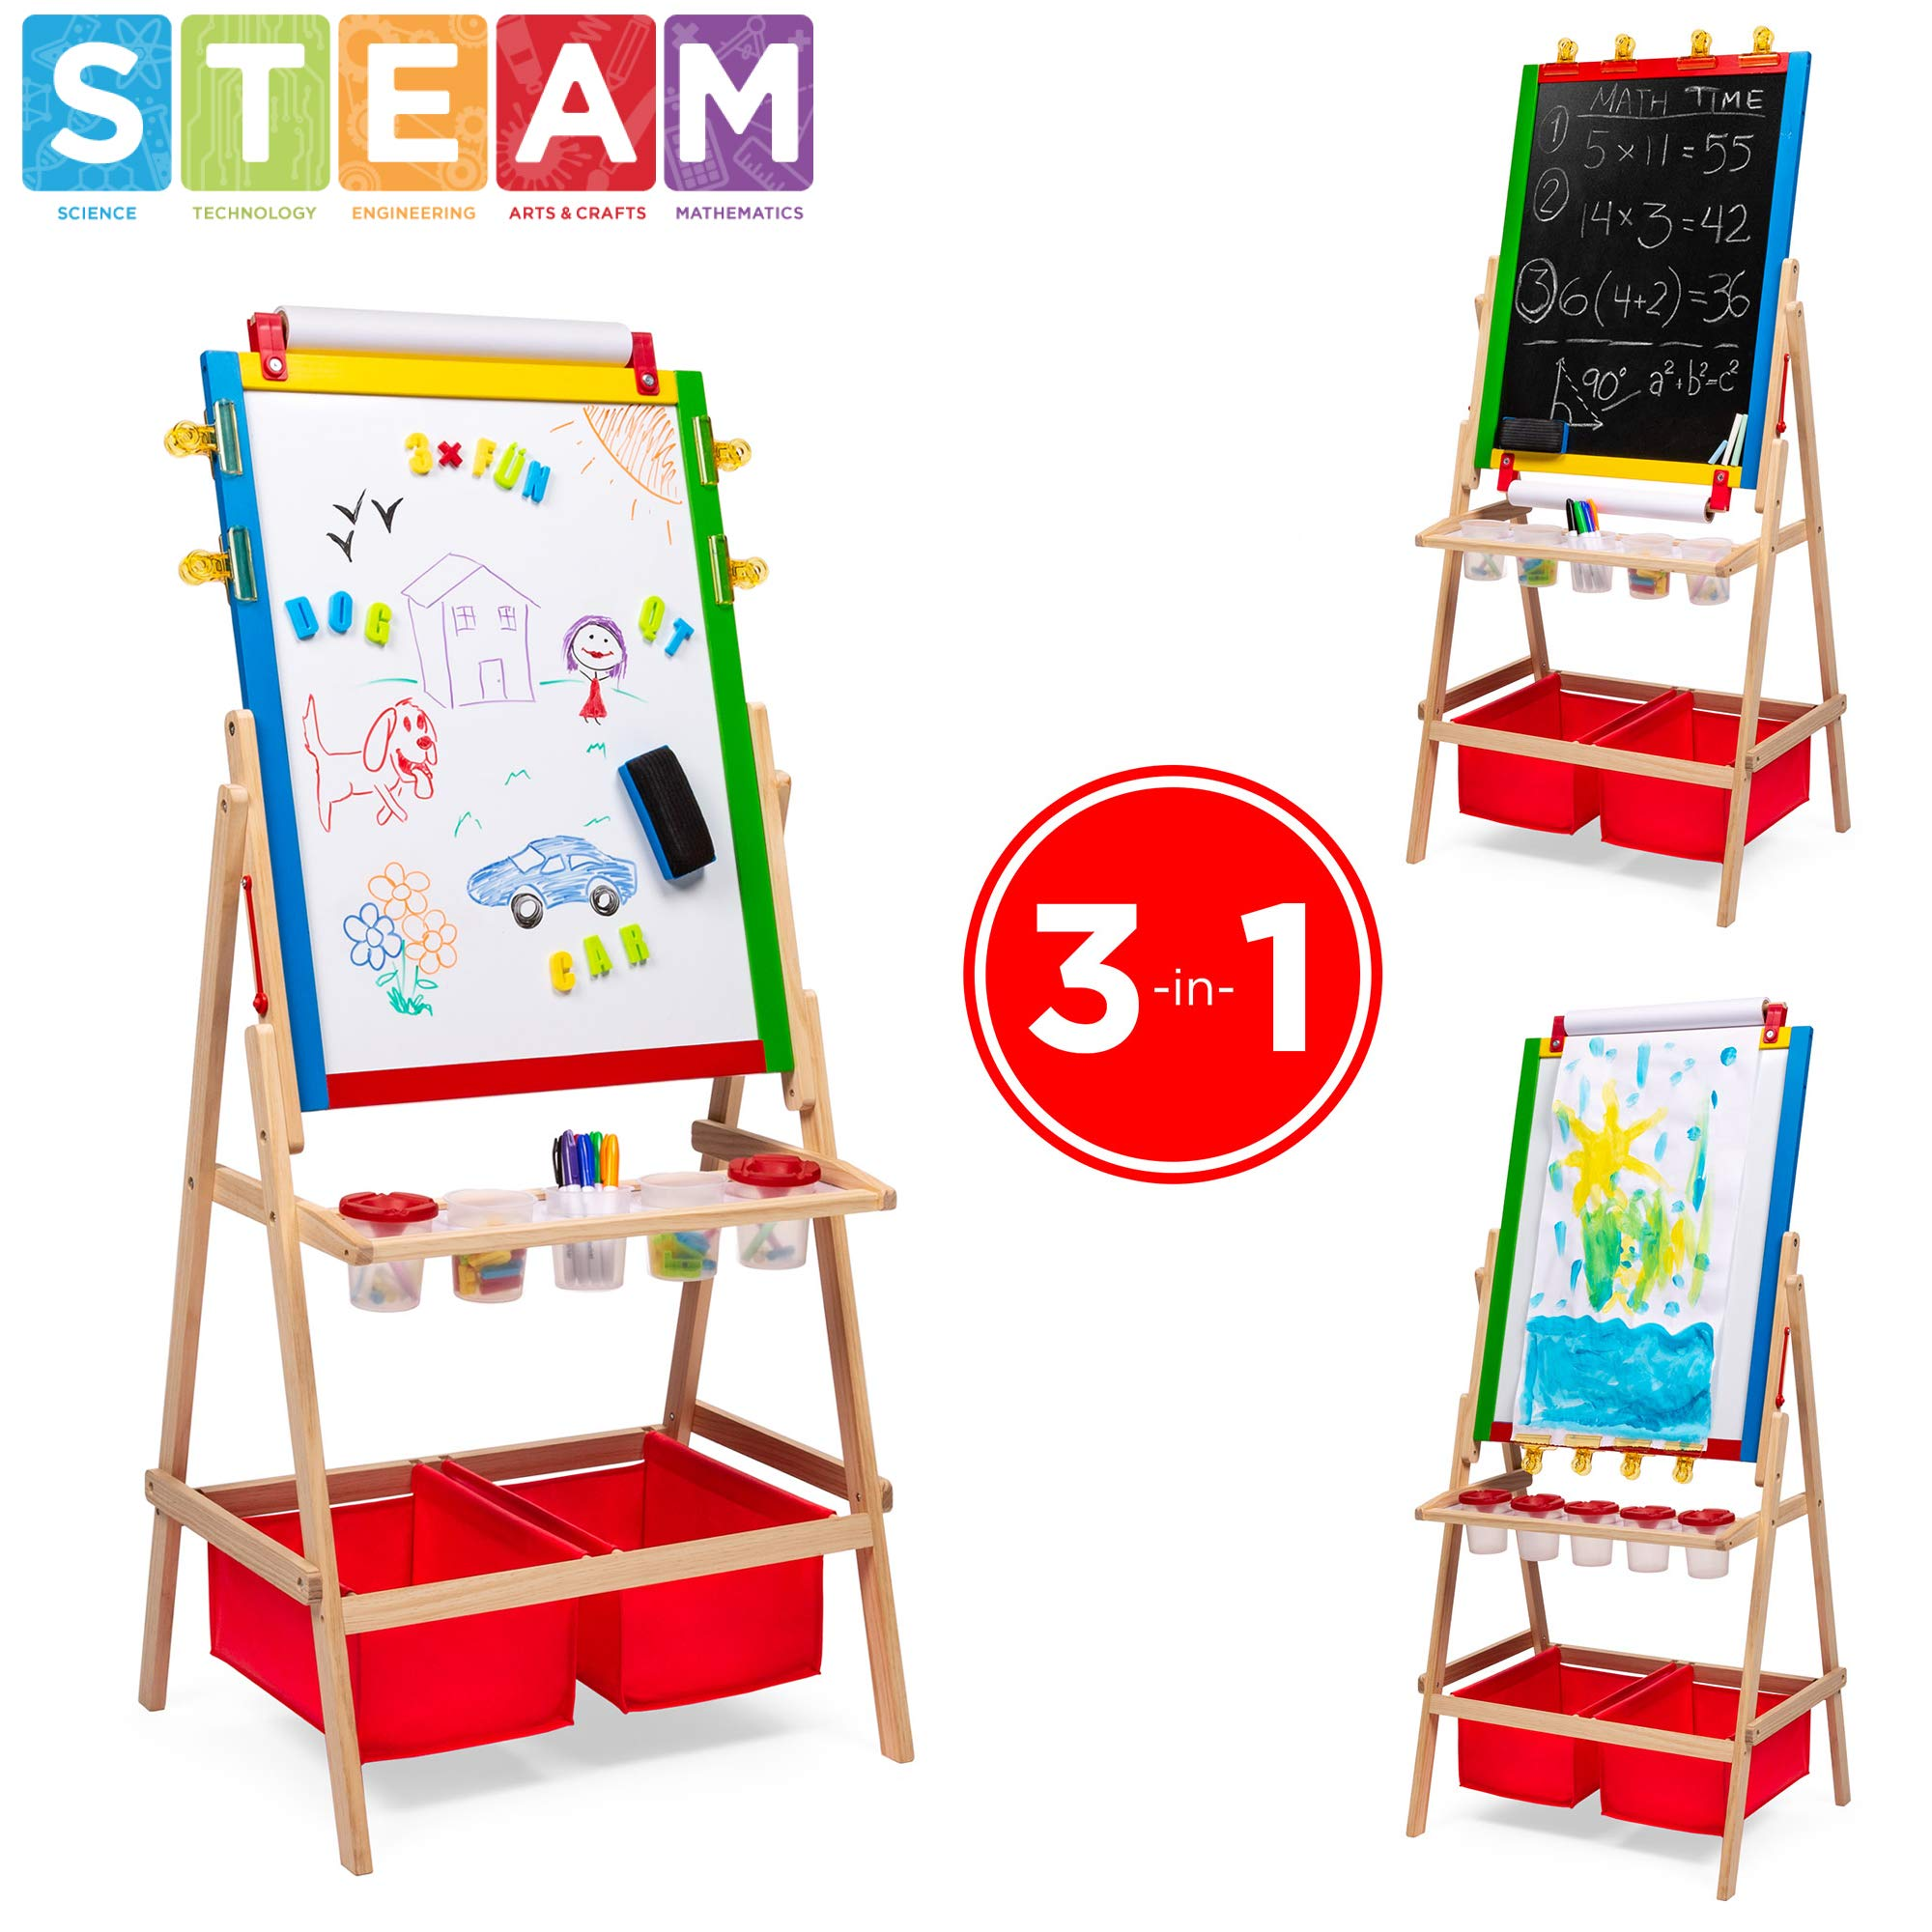 Best Choice Products 3-in-1 Kids Double-Sided Easel with Chalkboard & Whiteboard, Paper Roll, Dry Erase Markers, Magnets